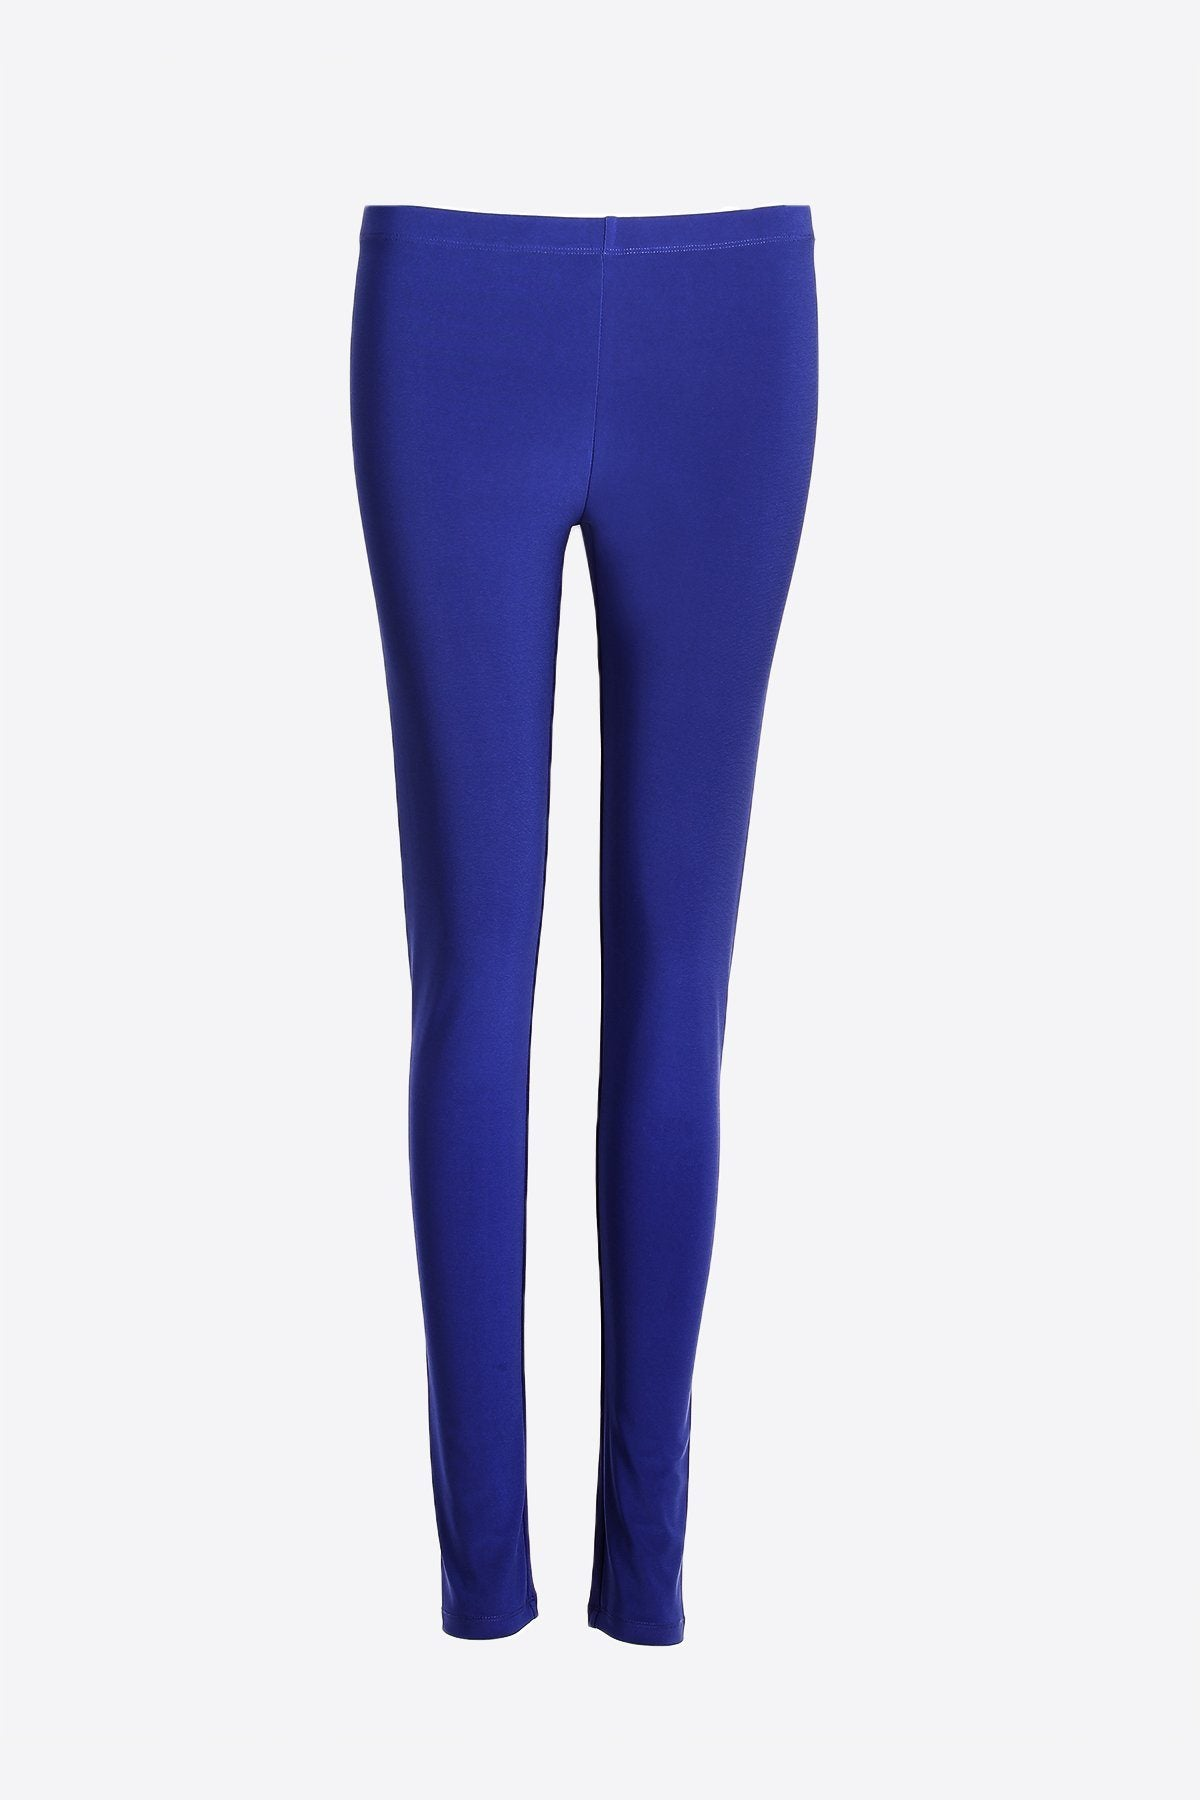 Women's Classic Leggings navy Rosarini